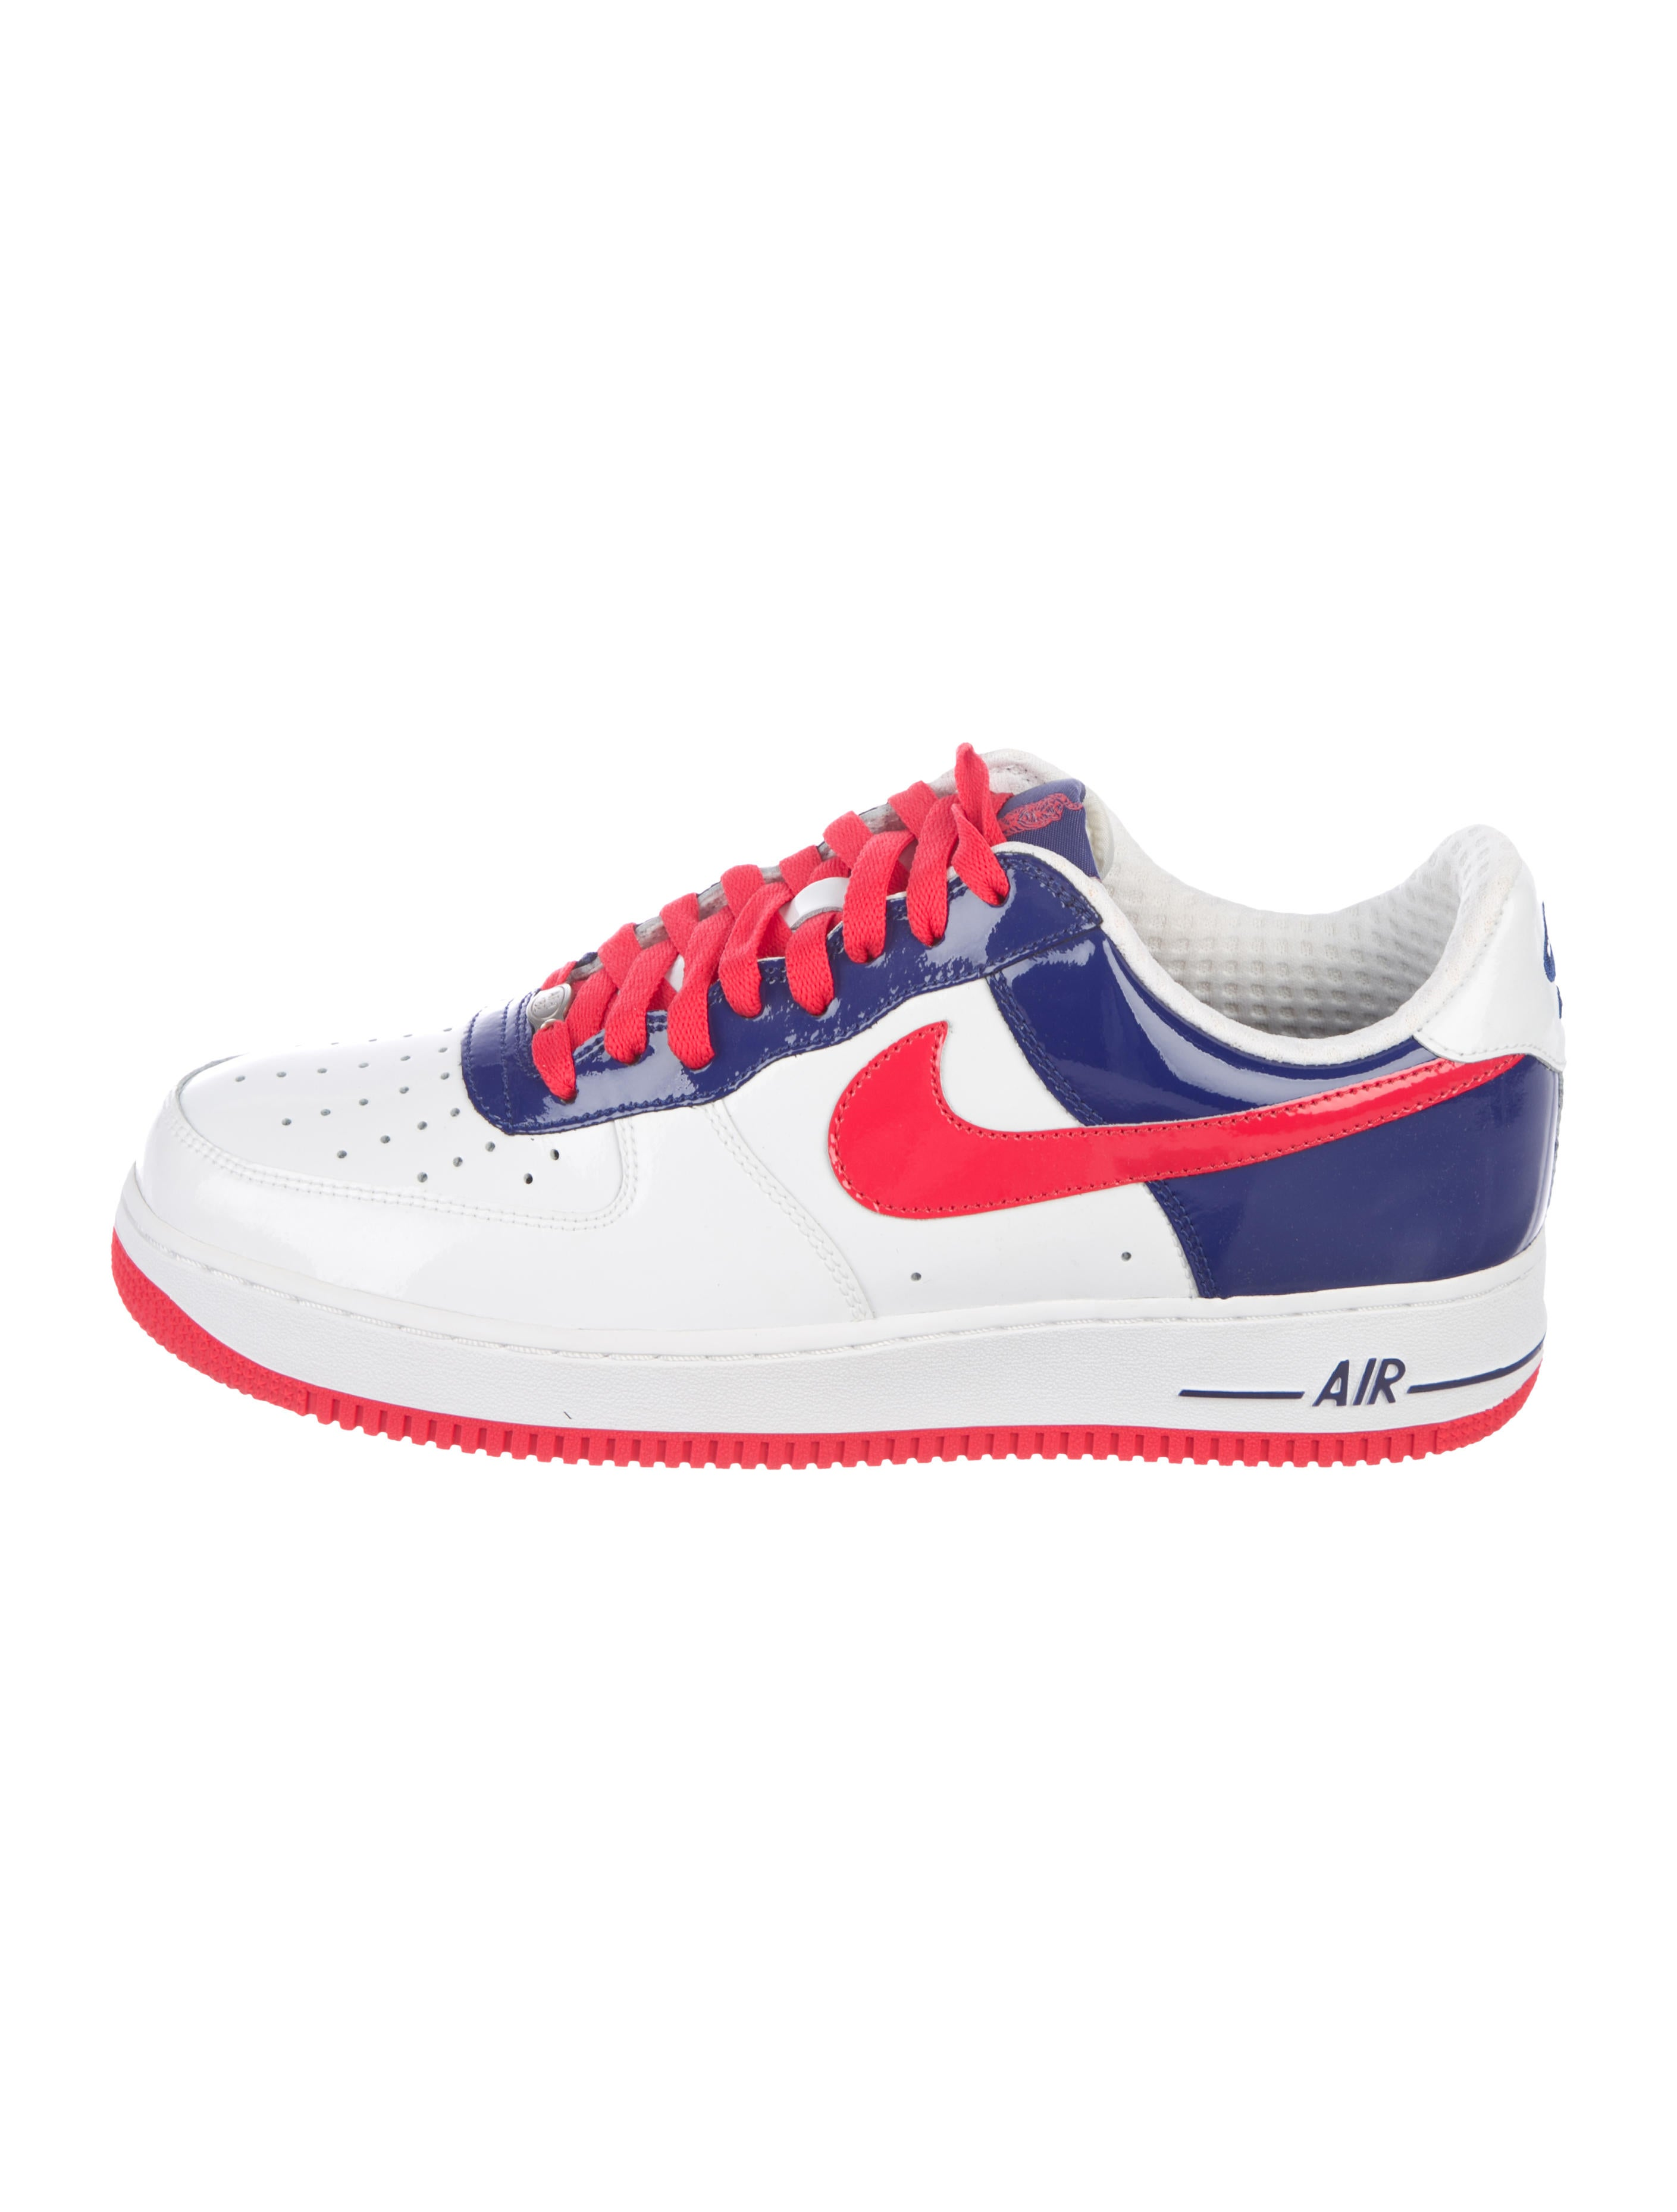 on sale 12c11 24ae2 Nike Air Force 1 Premium  South Korea World Cup  Sneakers w  Tags ...